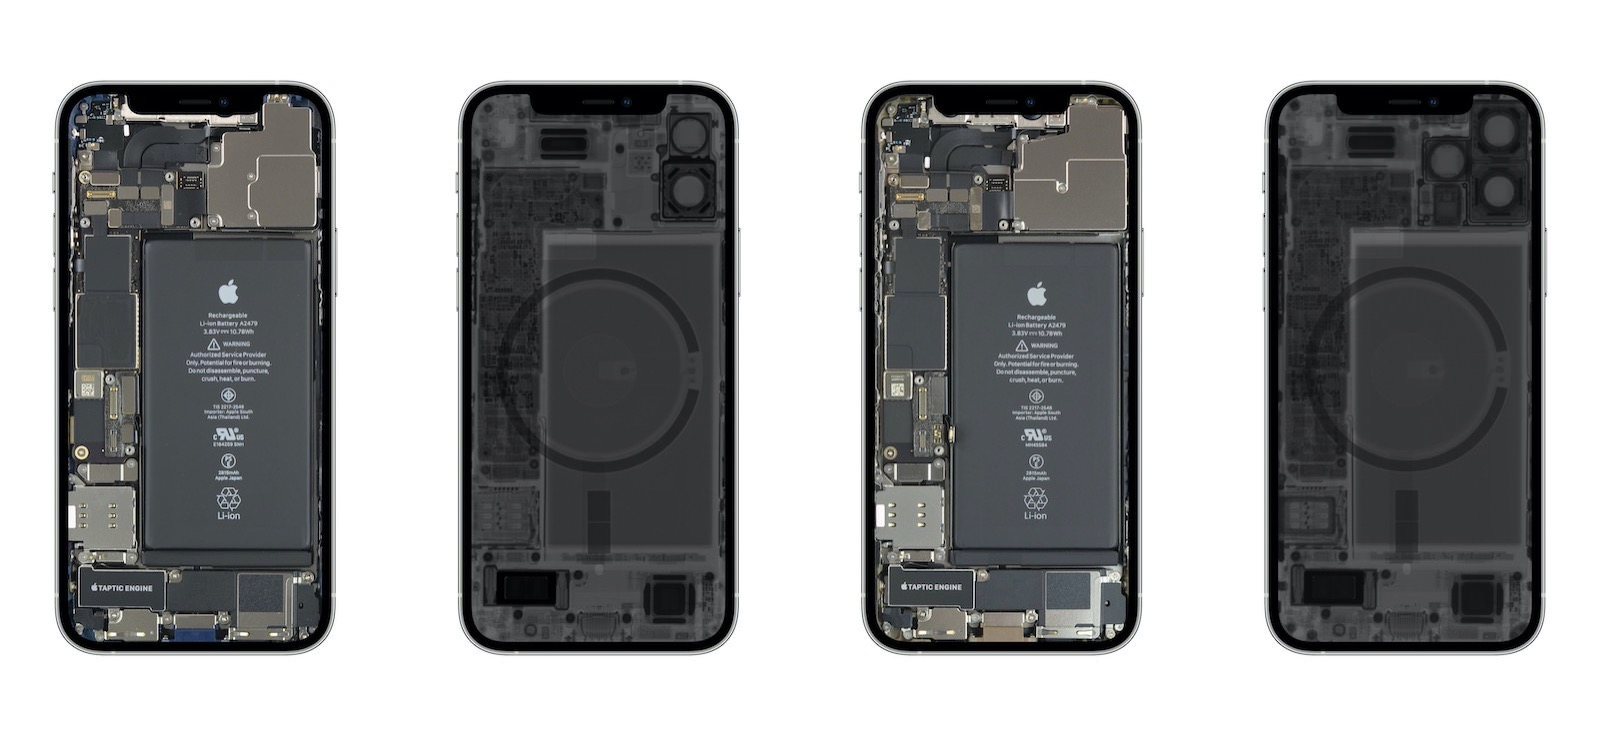 Ifixit see through wallpapers